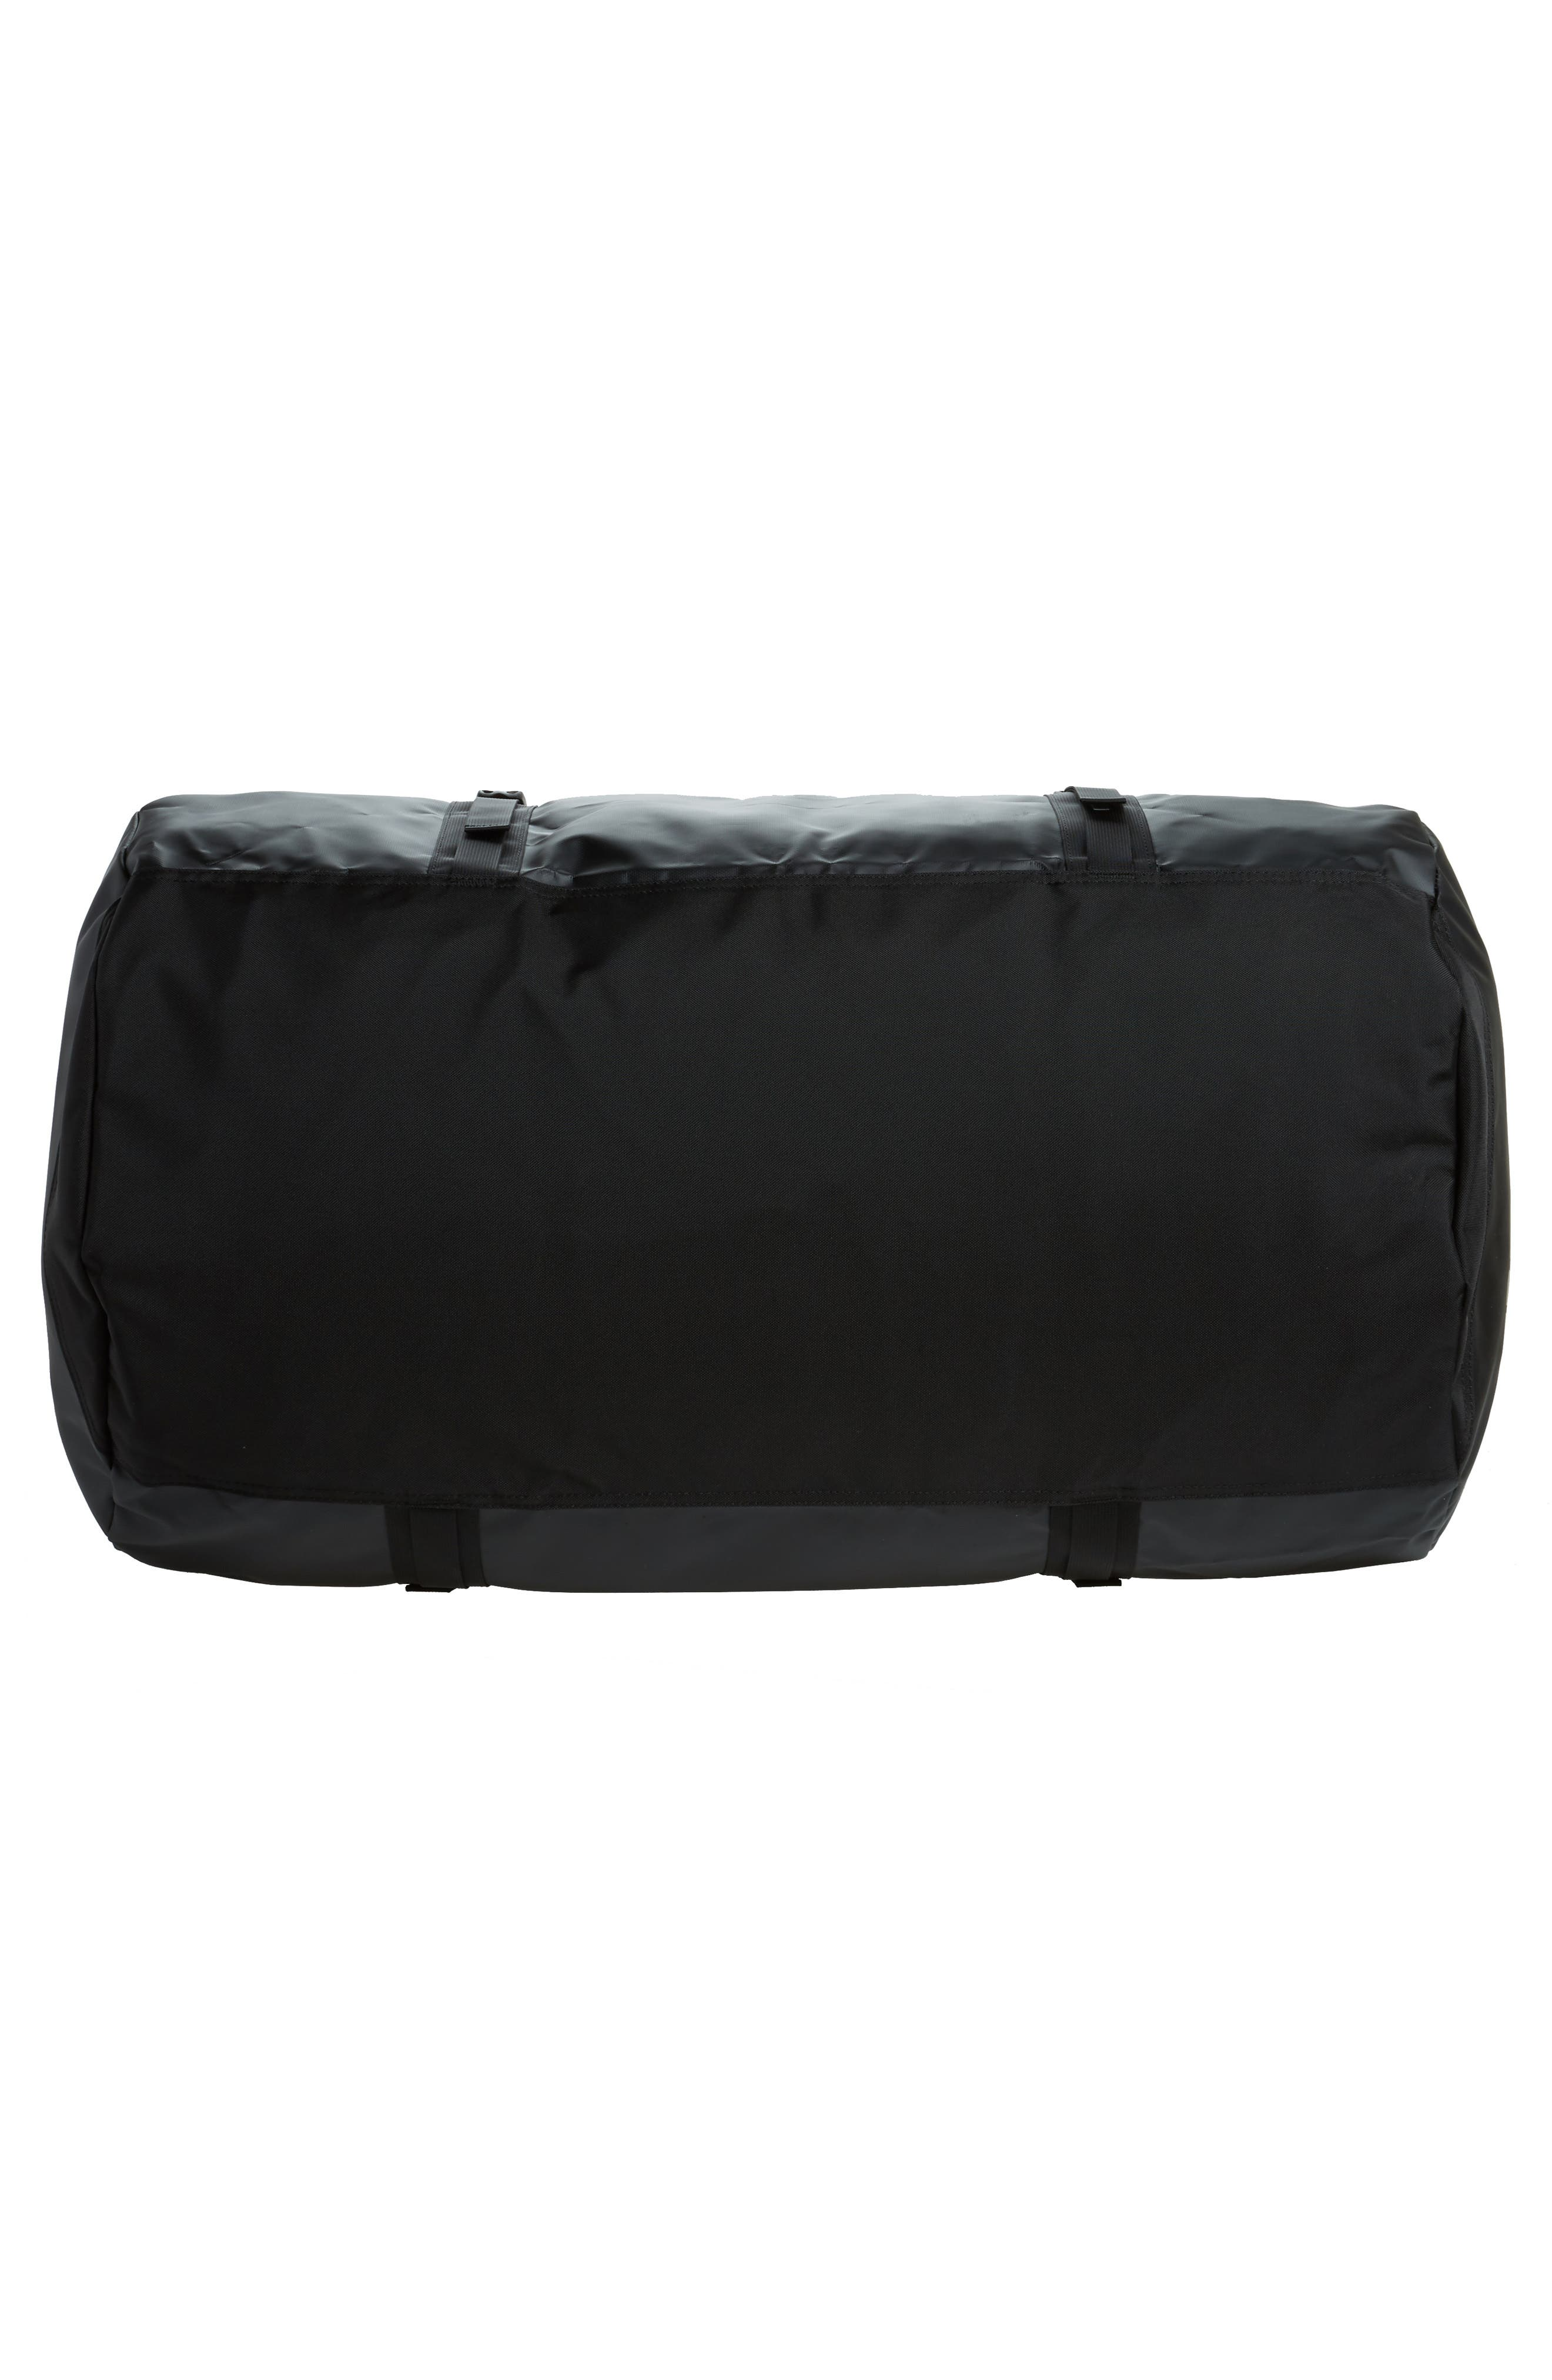 Base Camp XL Duffel Bag,                             Alternate thumbnail 6, color,                             Black